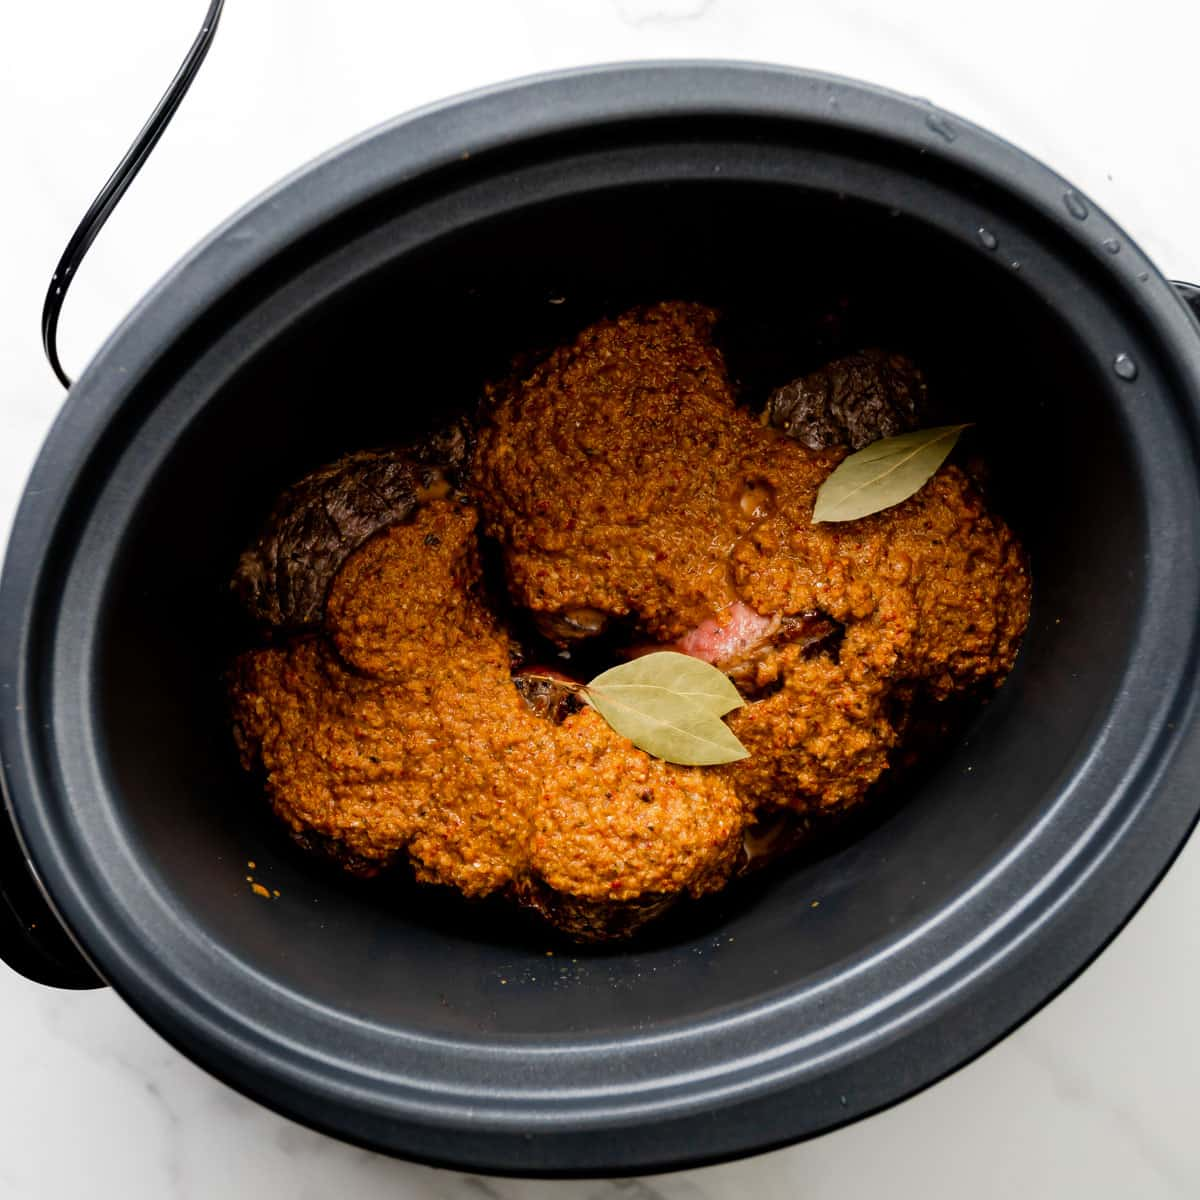 meat and seasoning in a slow cooker.